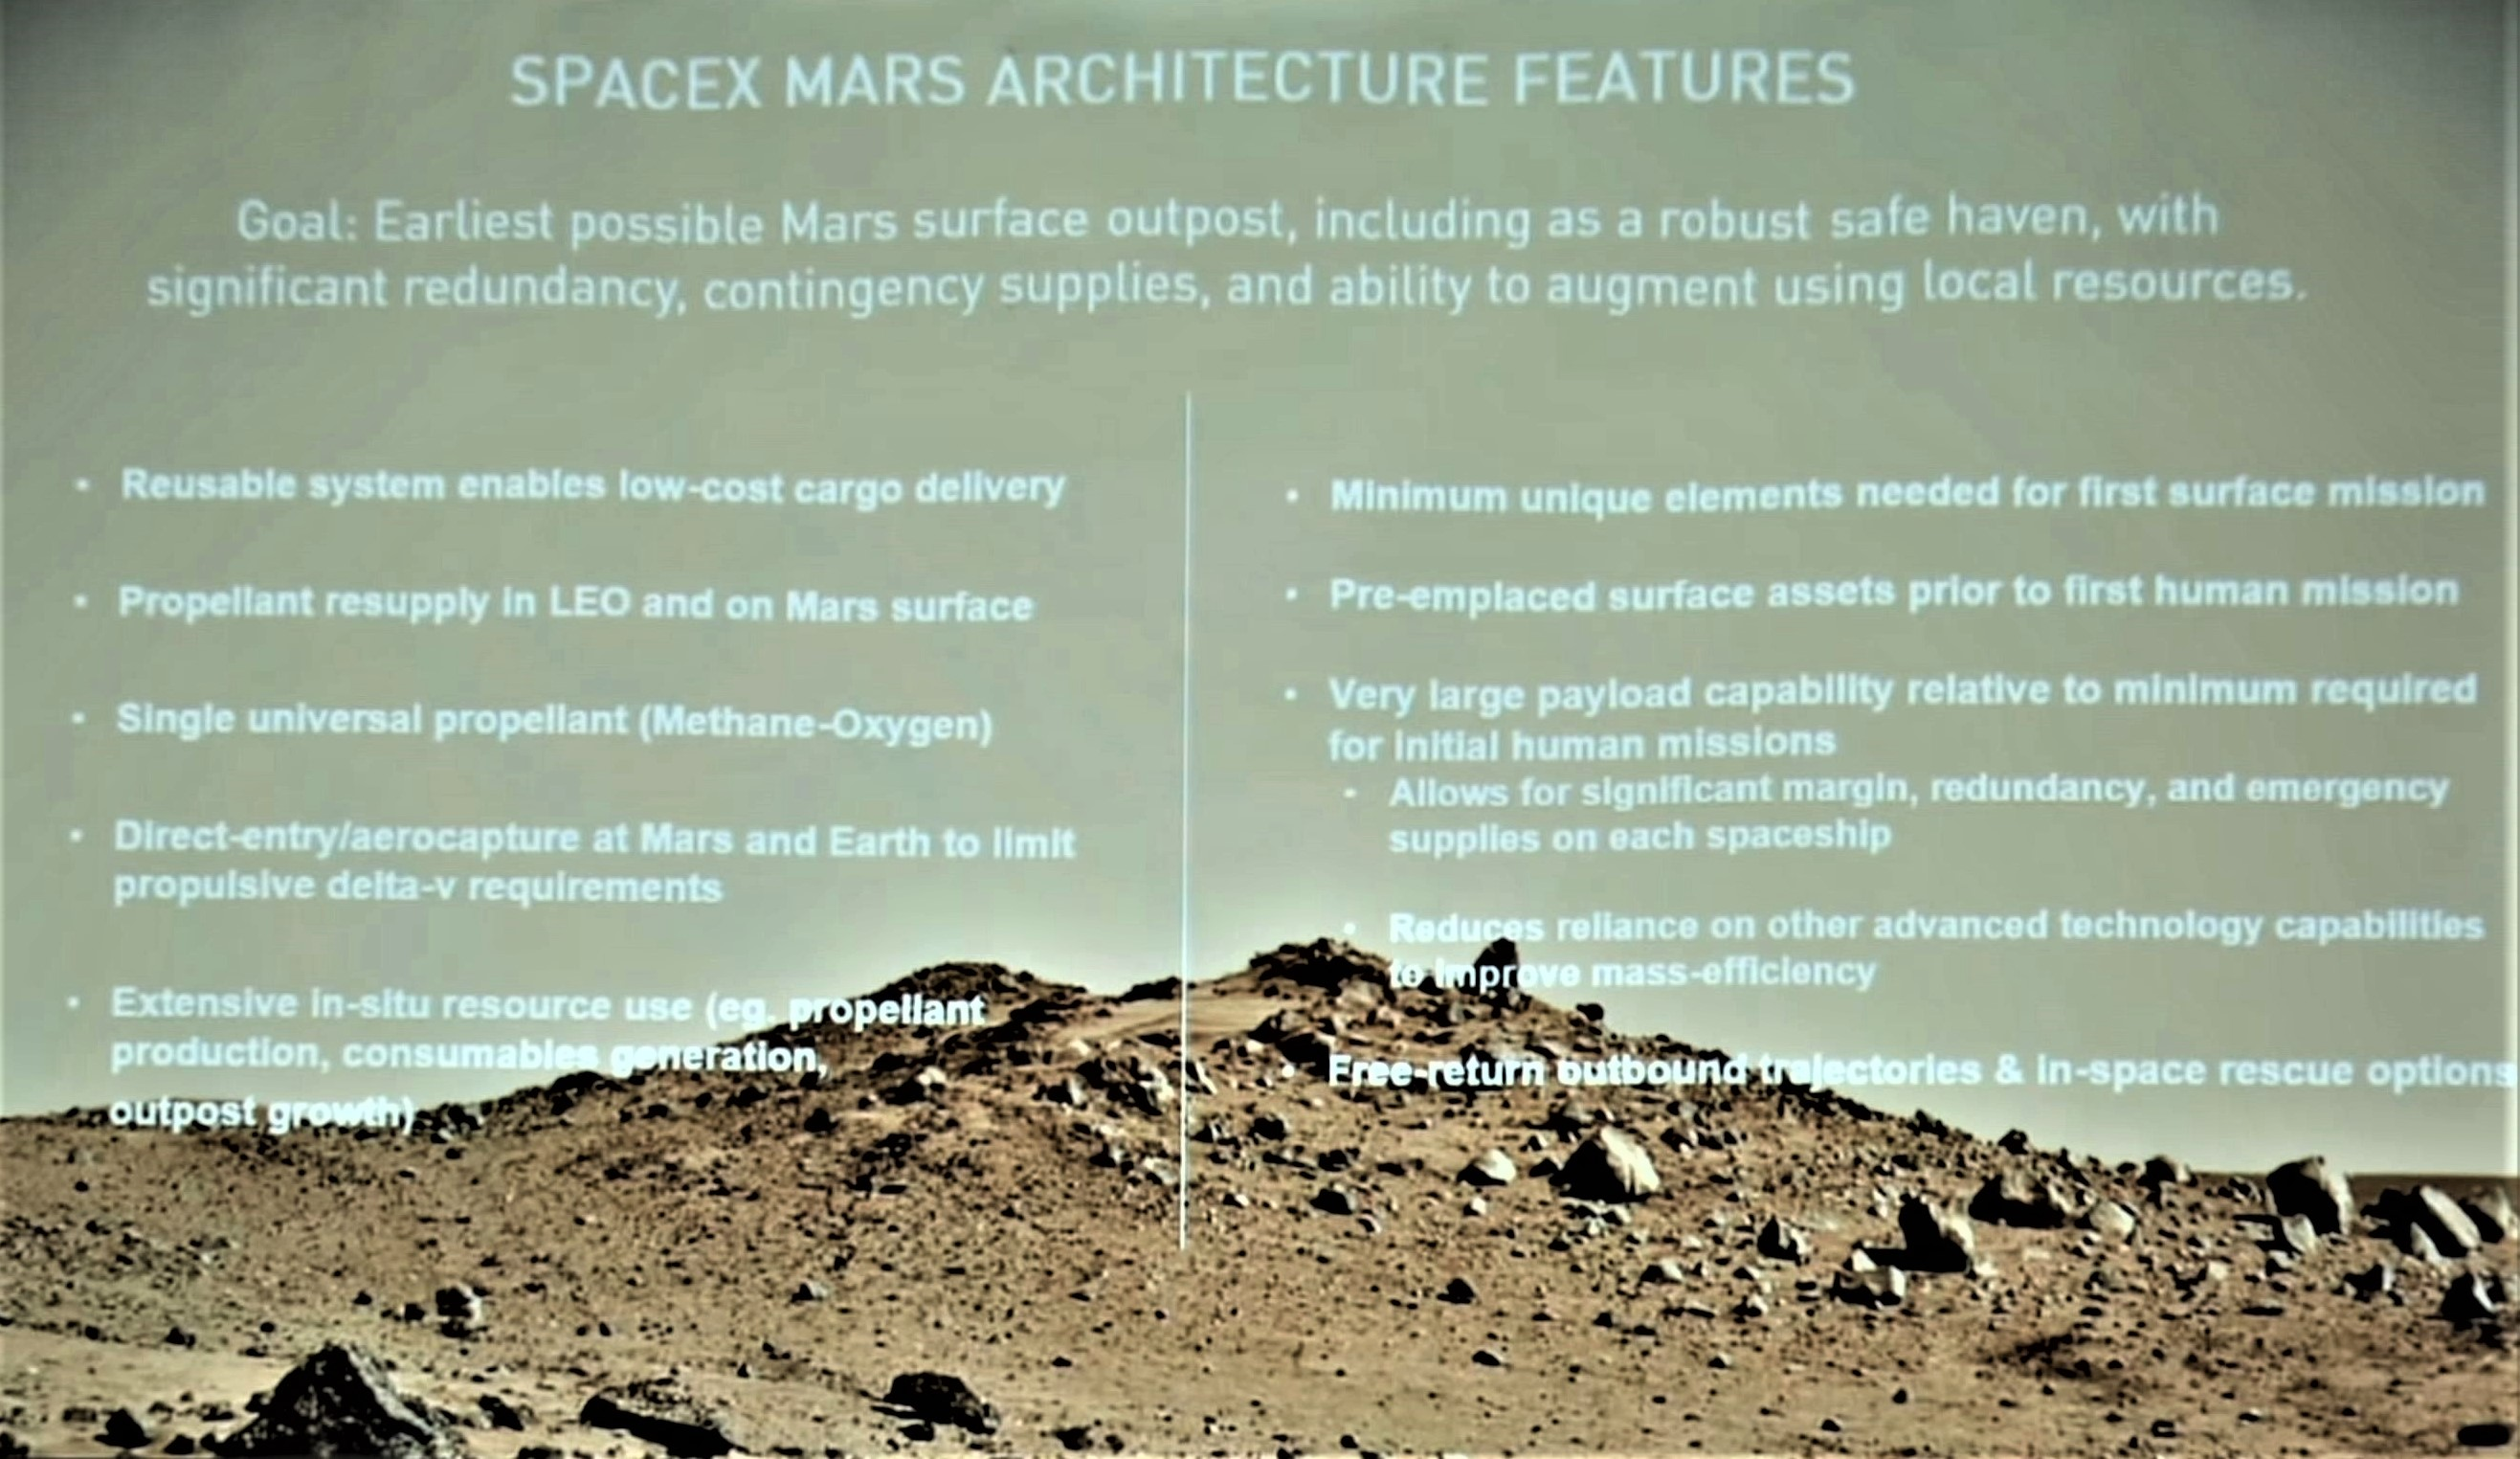 SpaceX Mars Architecture features – Wooster presentation (SpaceX)